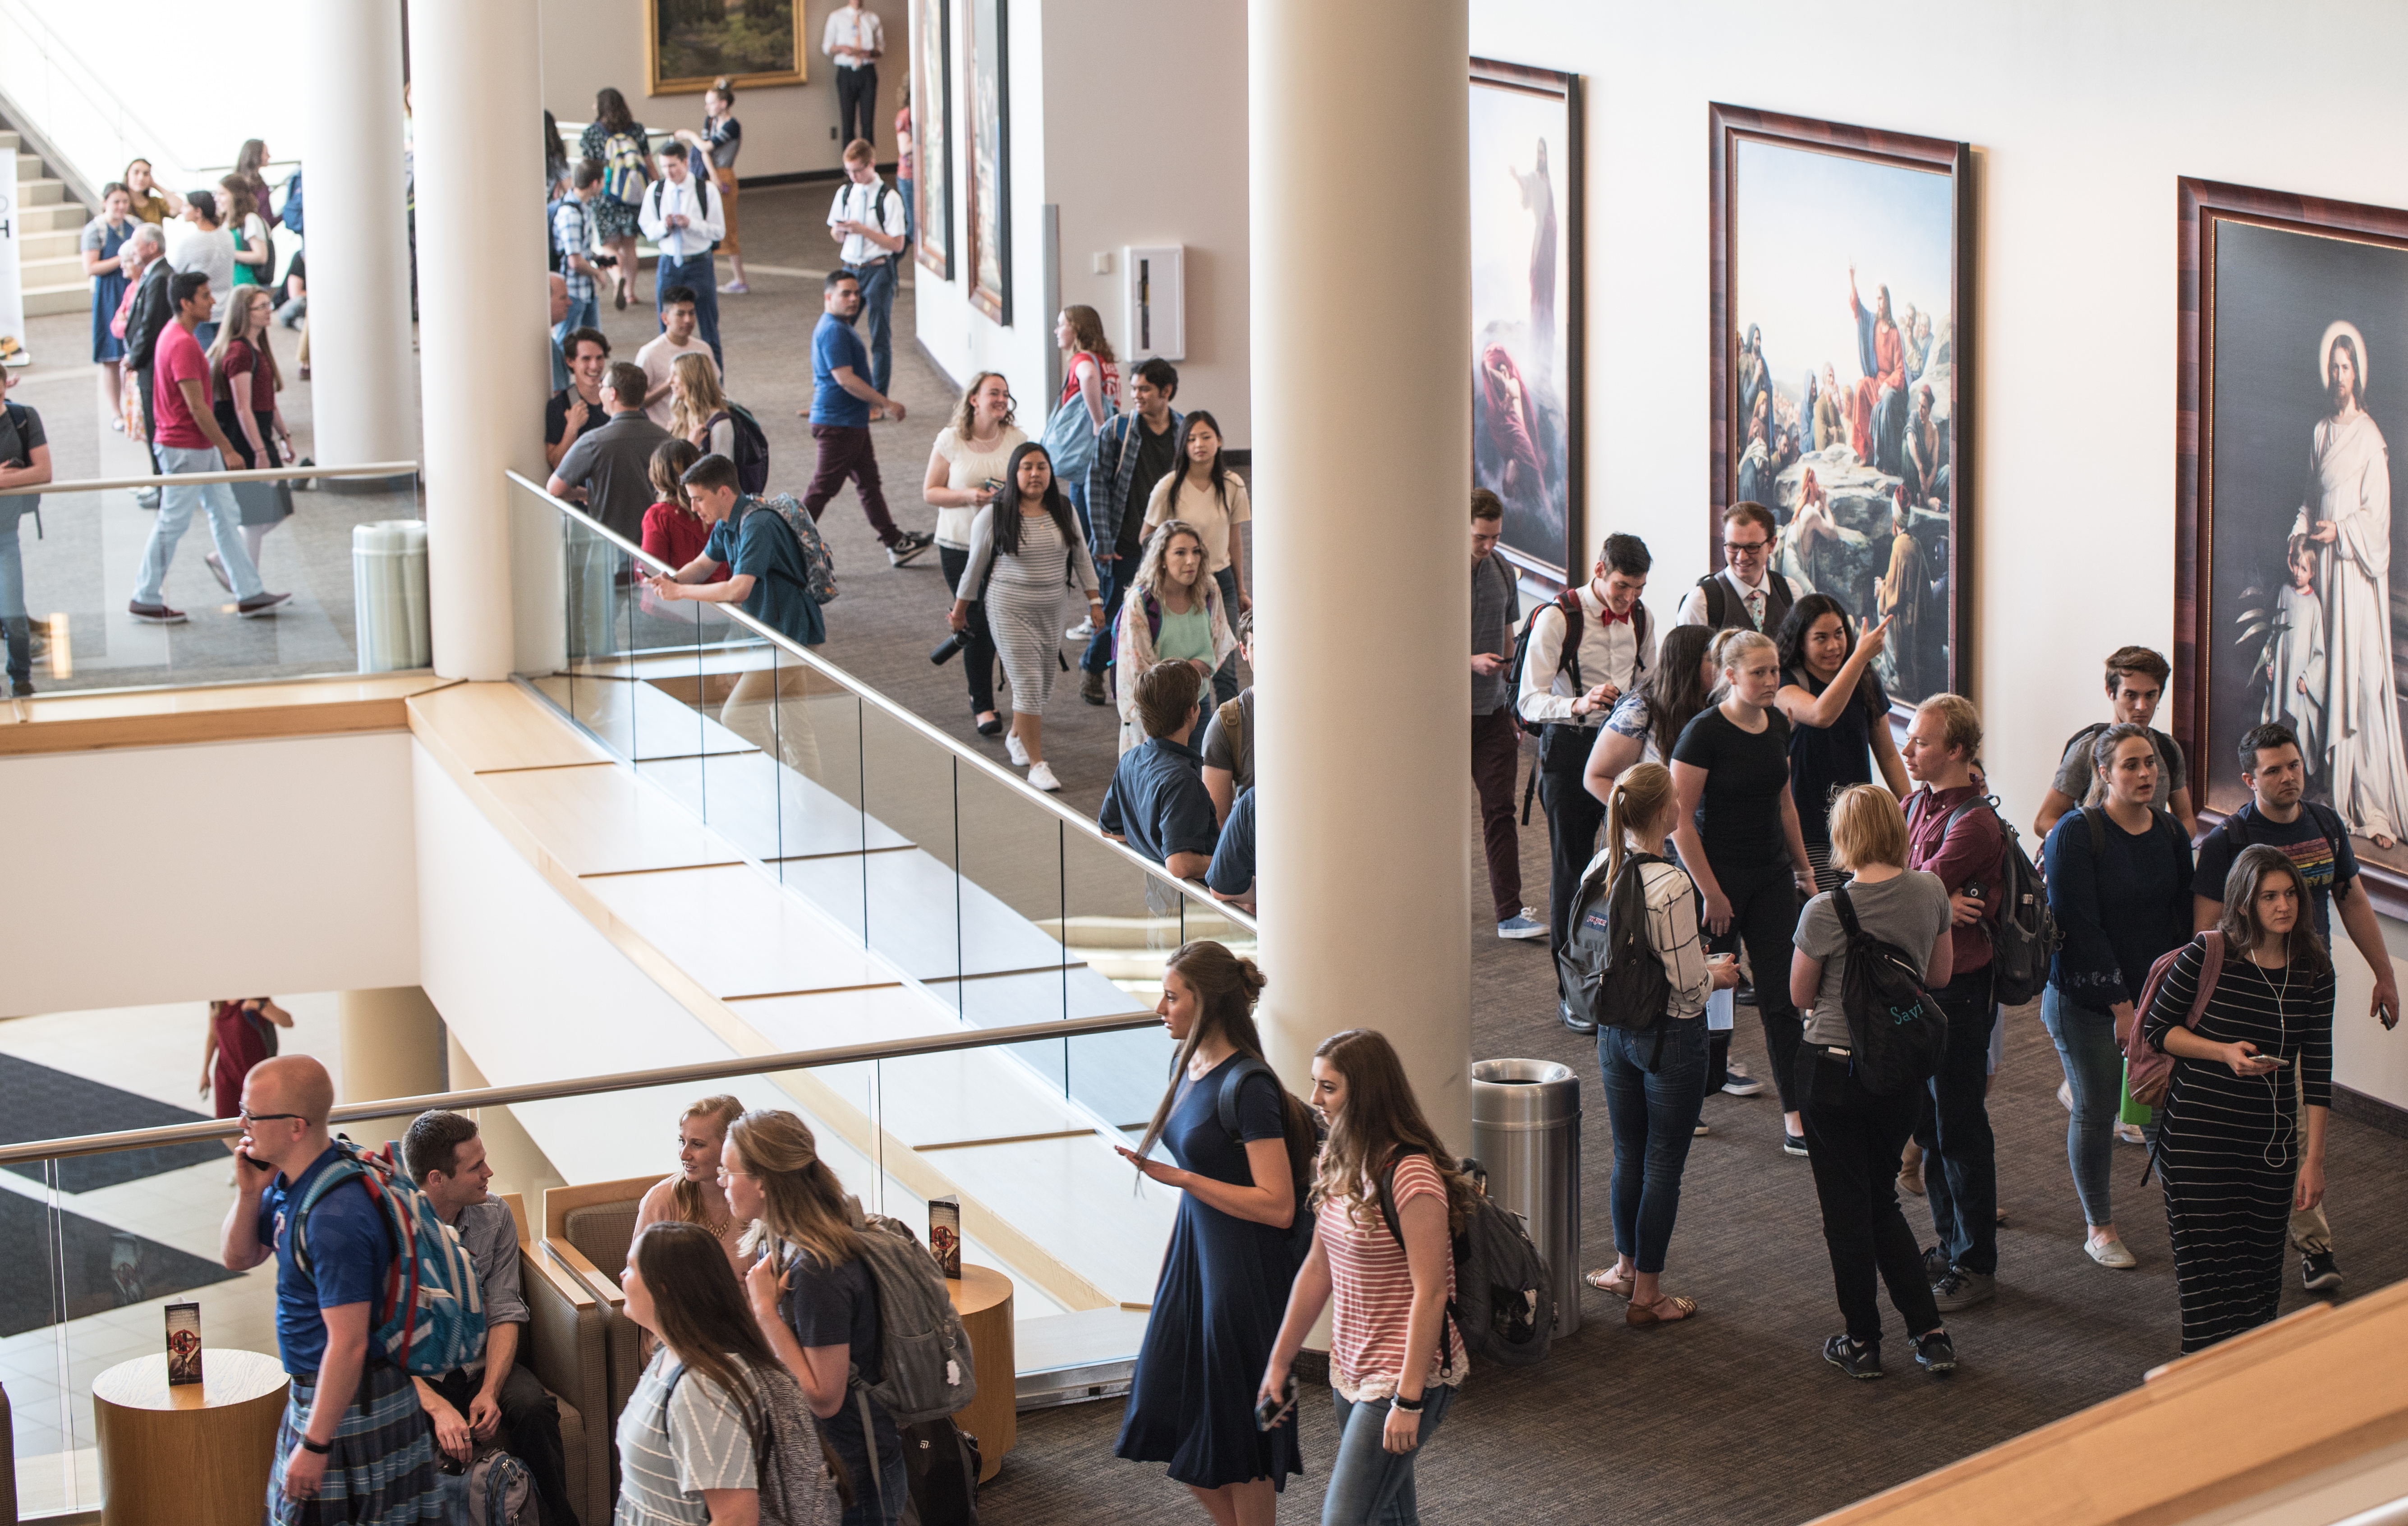 BYU-Idaho students enter the BYU-Idaho Center on June 4, 2019, for a weekly devotional.